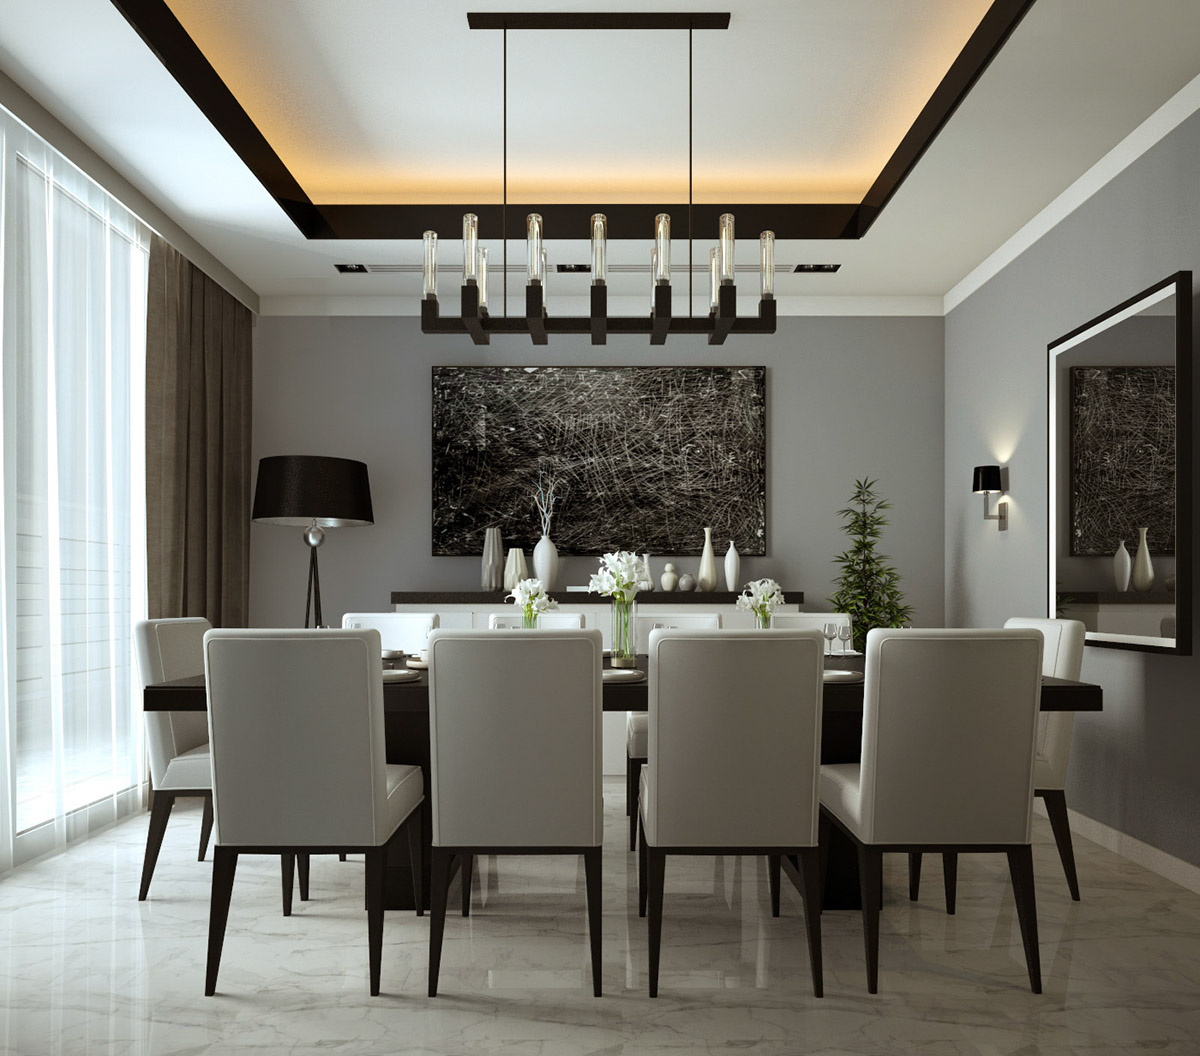 64 Modern Dining Room Ideas And Designs: Dining Room On Behance